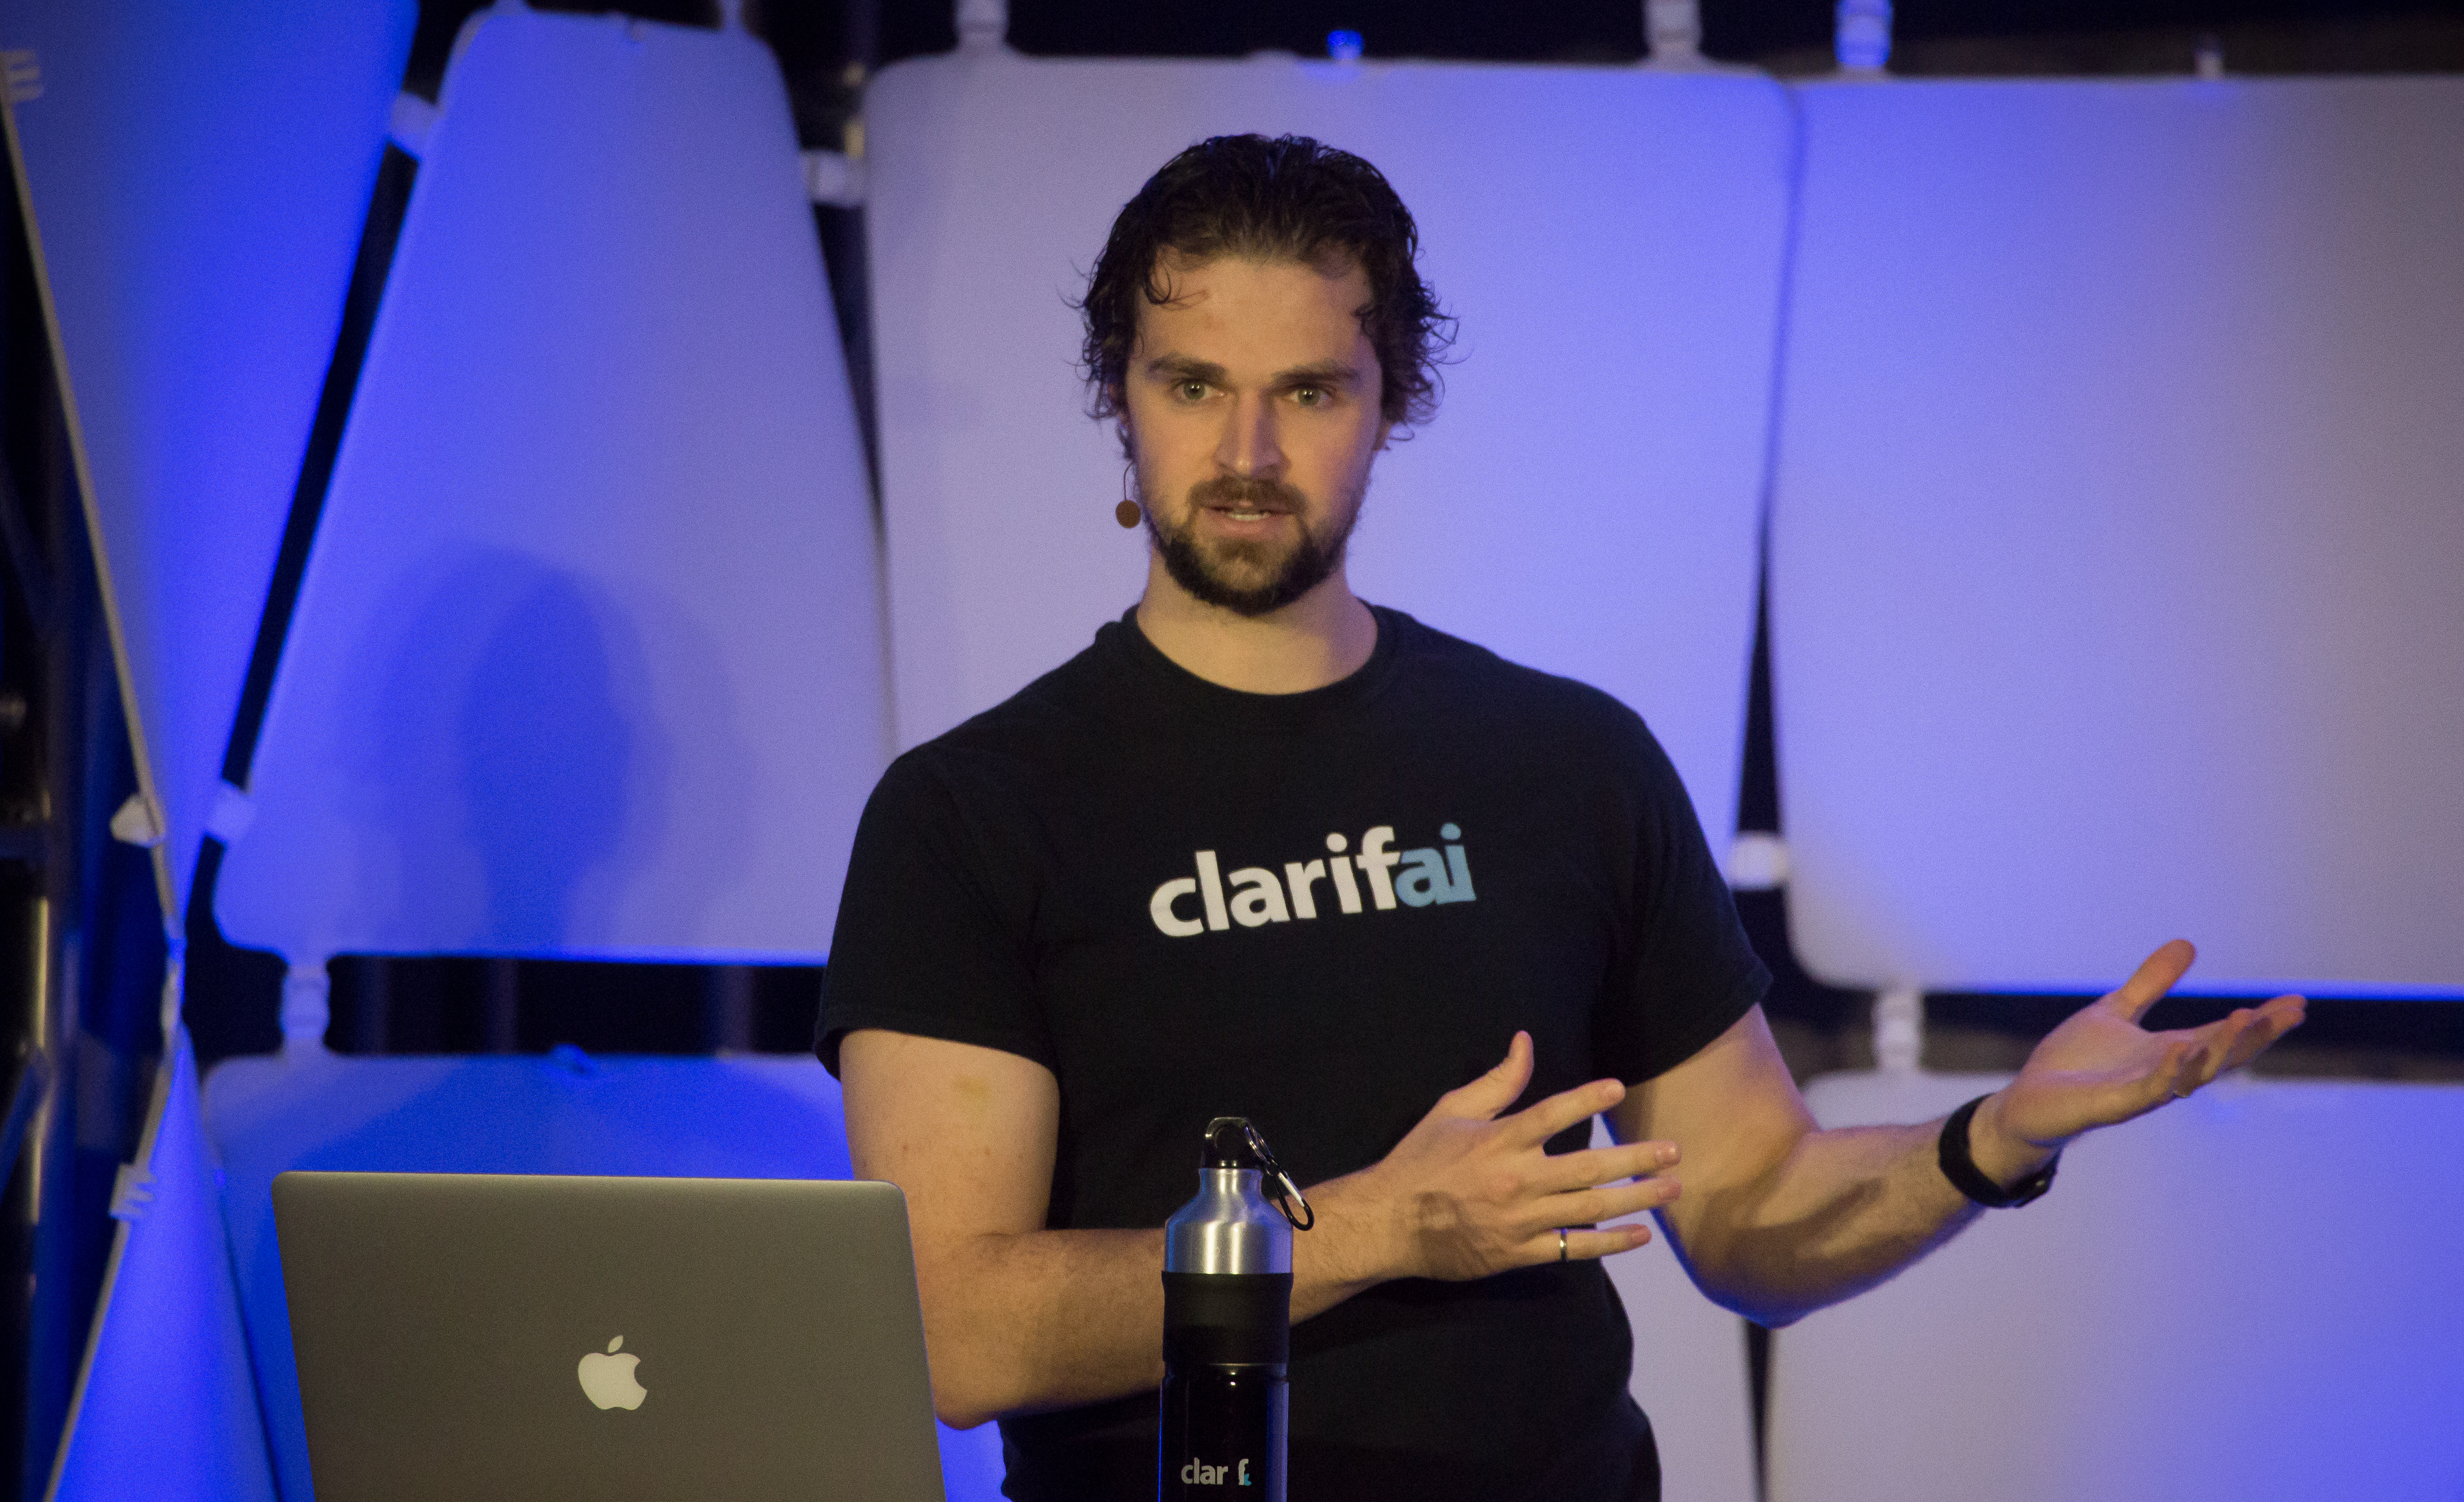 Clarifai CEO Matthew Zeiler at EmTech Digital 2017 in San Francisco.